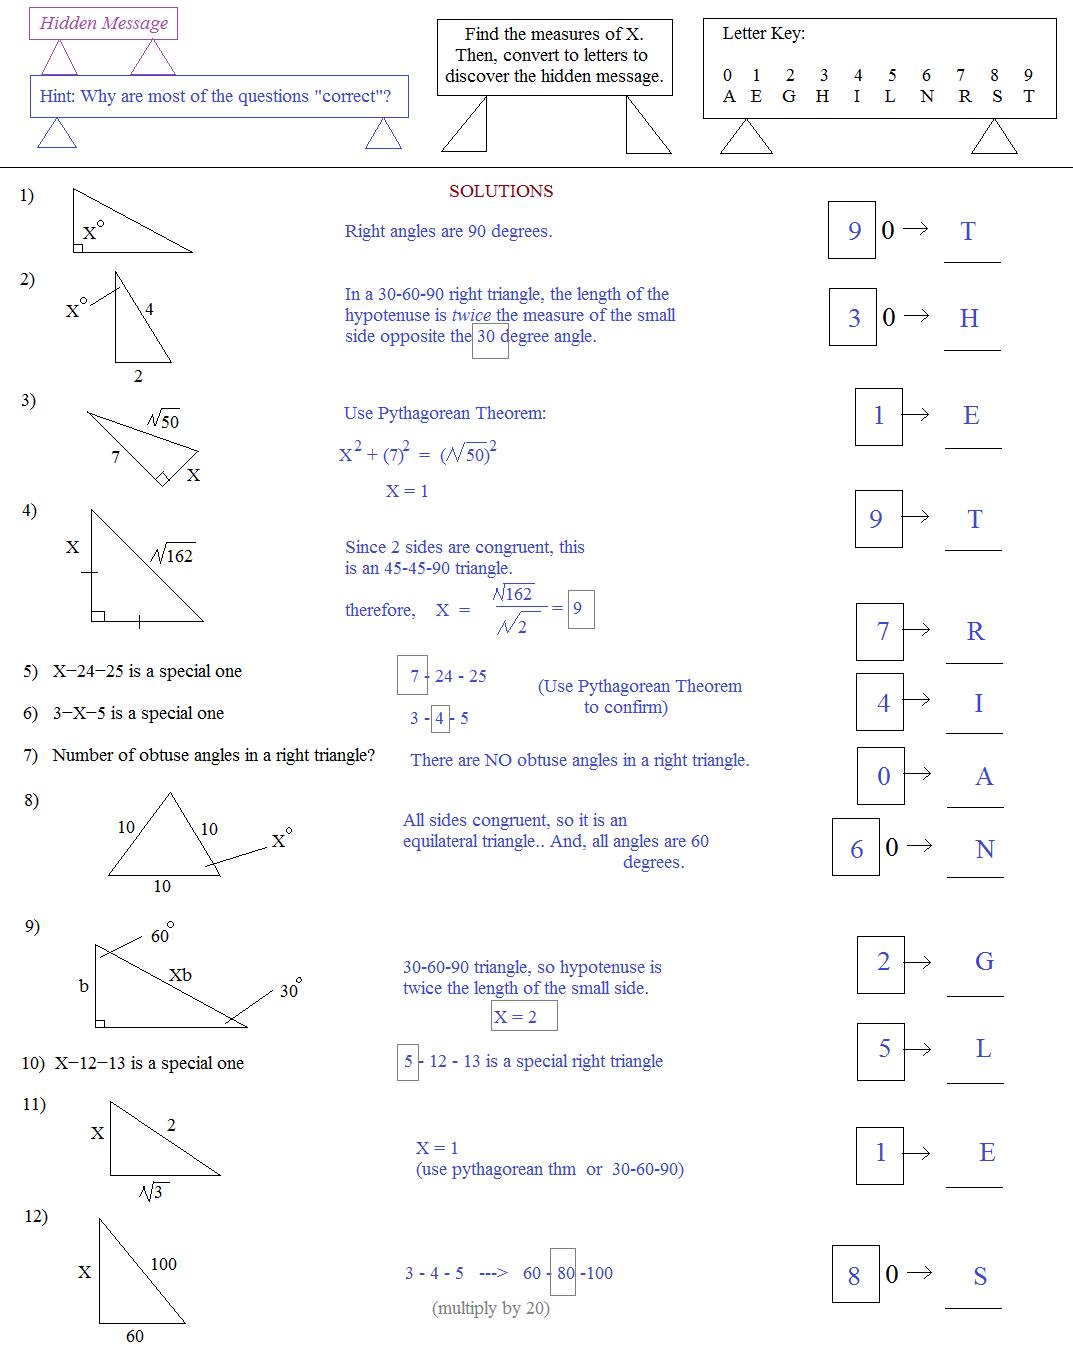 worksheet Multi Step Special Right Triangles Duliziyou – Special Right Triangles Worksheet 30-60-90 Answers